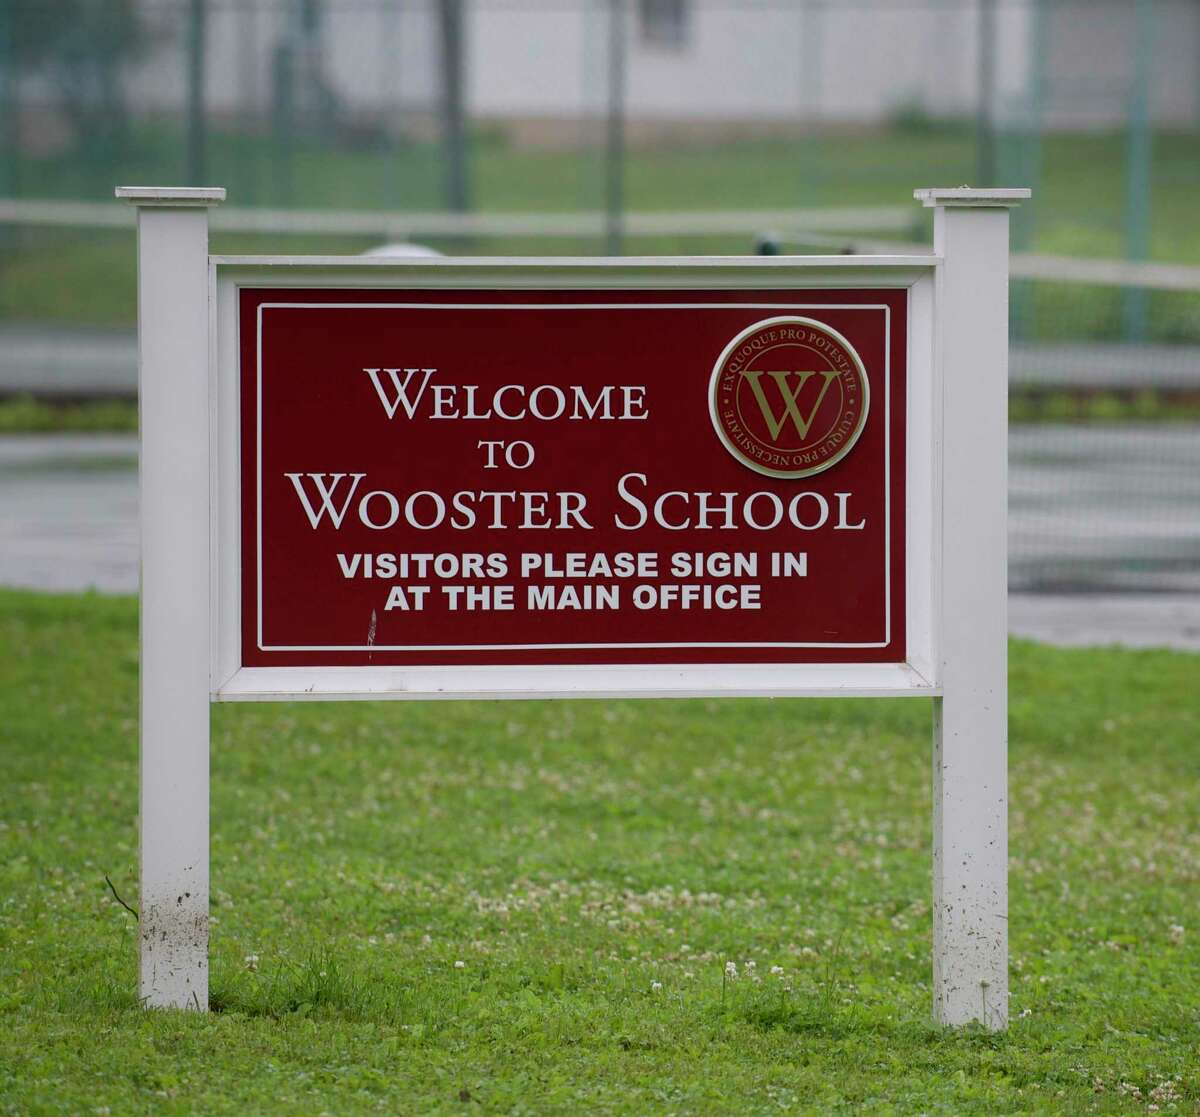 Sign at Wooster School, in Danbury, Conn, on Friday morning, June 13, 2014. The school will require vaccines for staff and eligible students as part of its 2021-22 return-to-school plan.